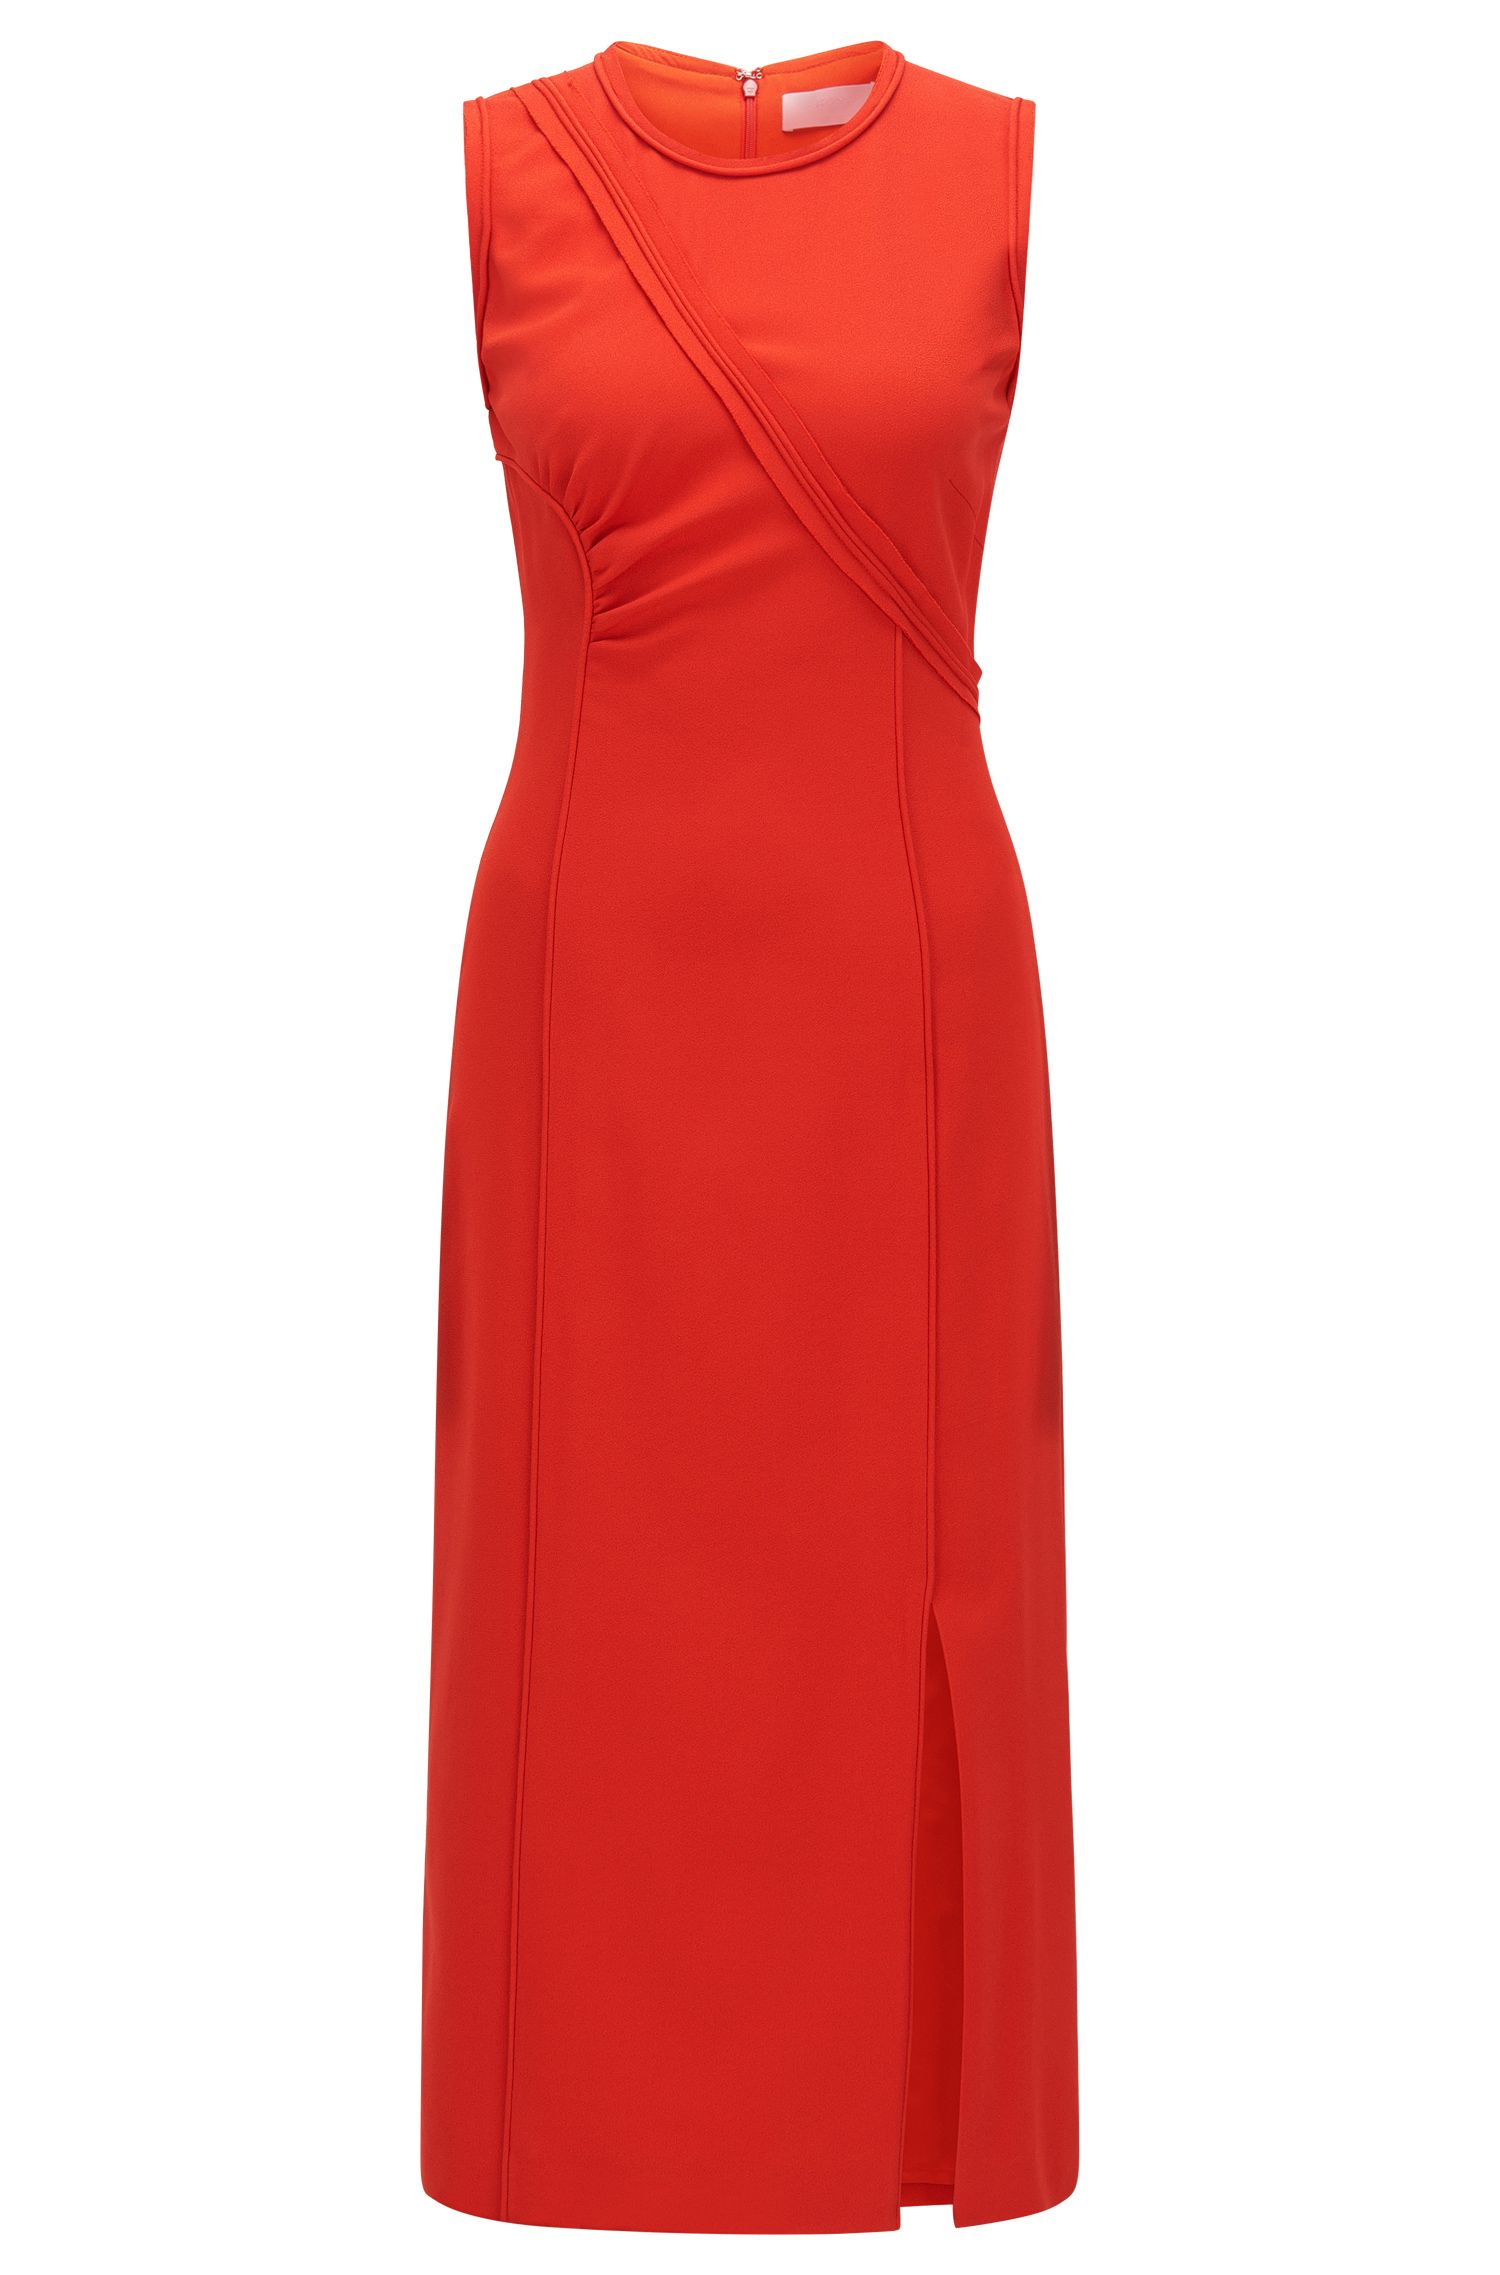 FS Dymeani C | Asymmetrical Bodice Sheath Dress, Red